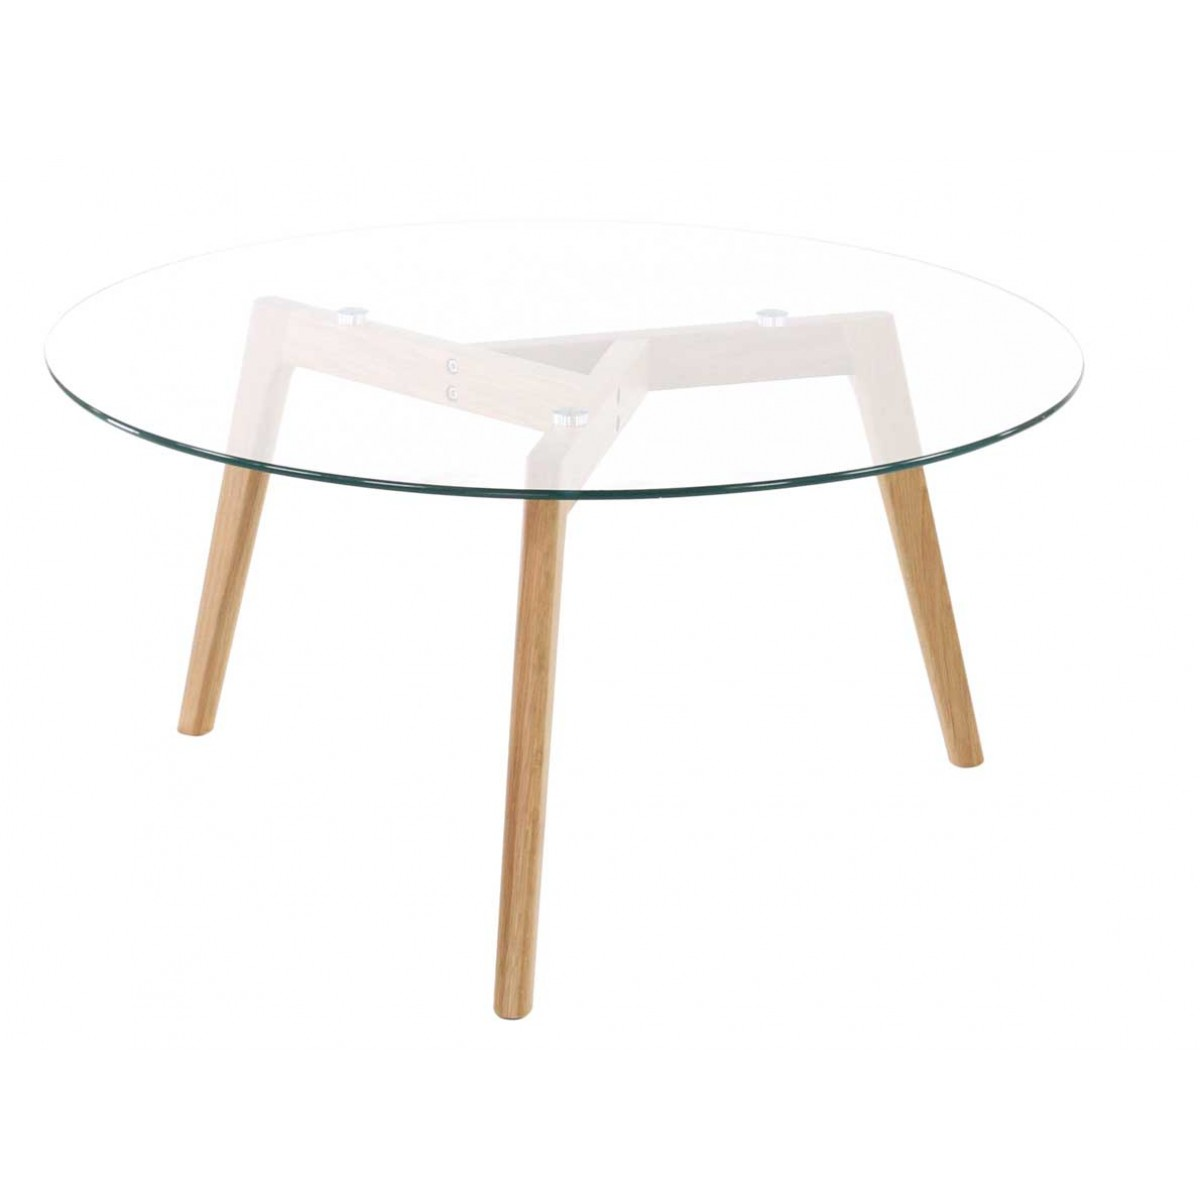 Table basse en verre ronde design scandie mooviin - Table basse en verre but ...